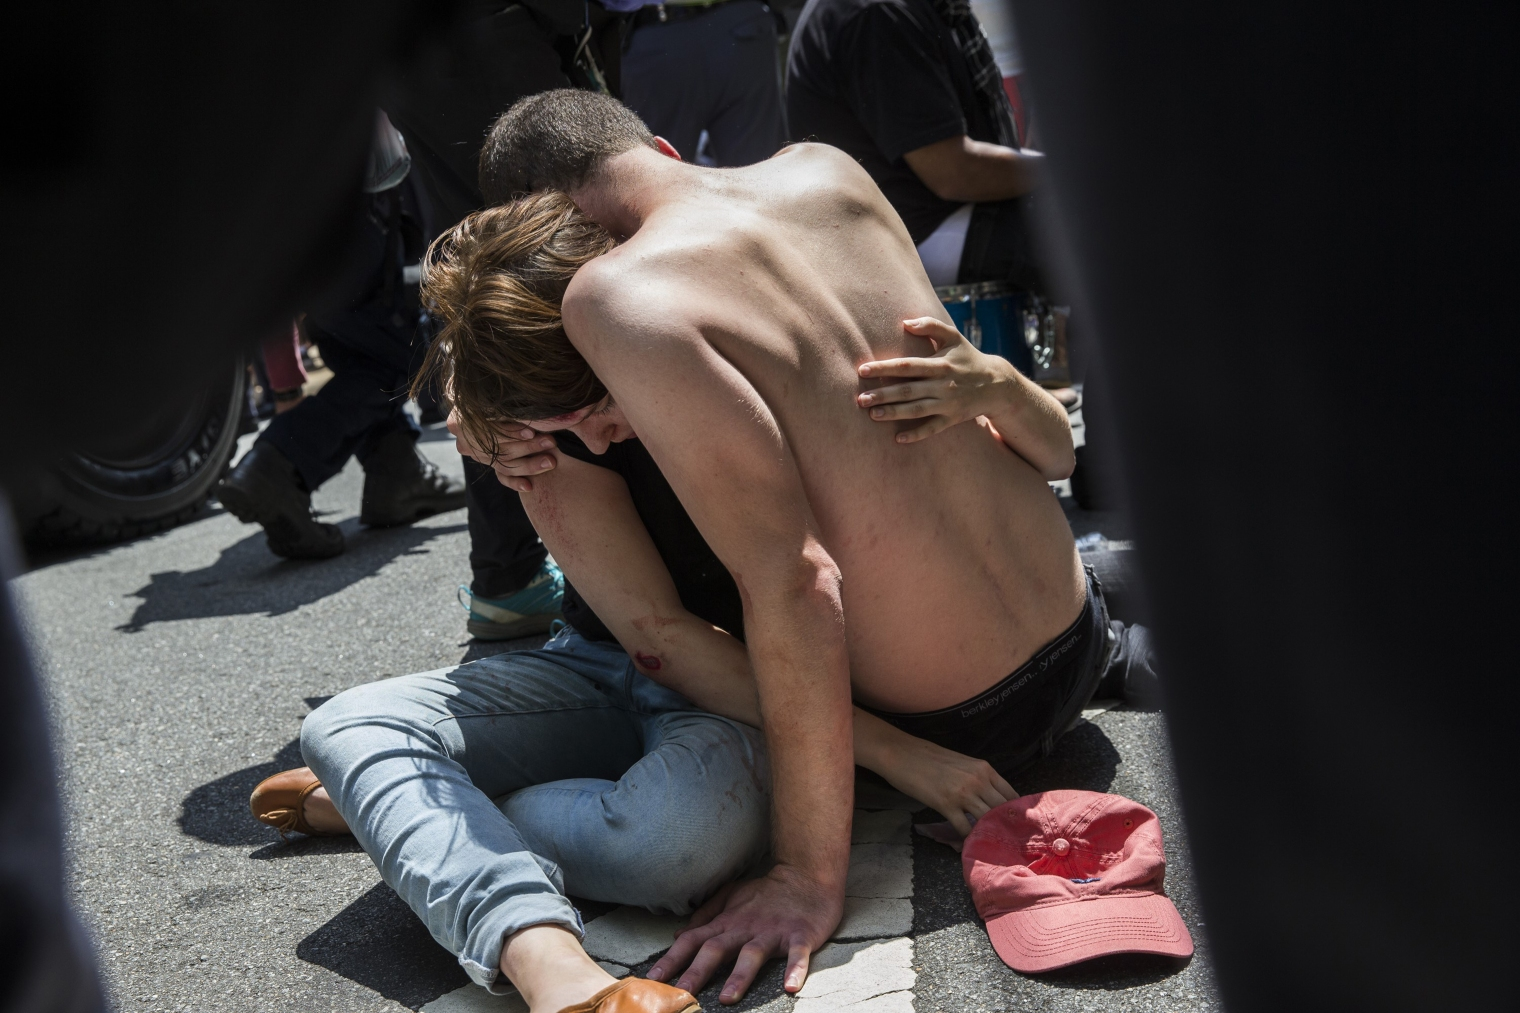 A man embraces an injured woman after a car rammed into a crowd of anti-white nationalist protesters in Charlottesville, Va., on Aug.12, 2017.